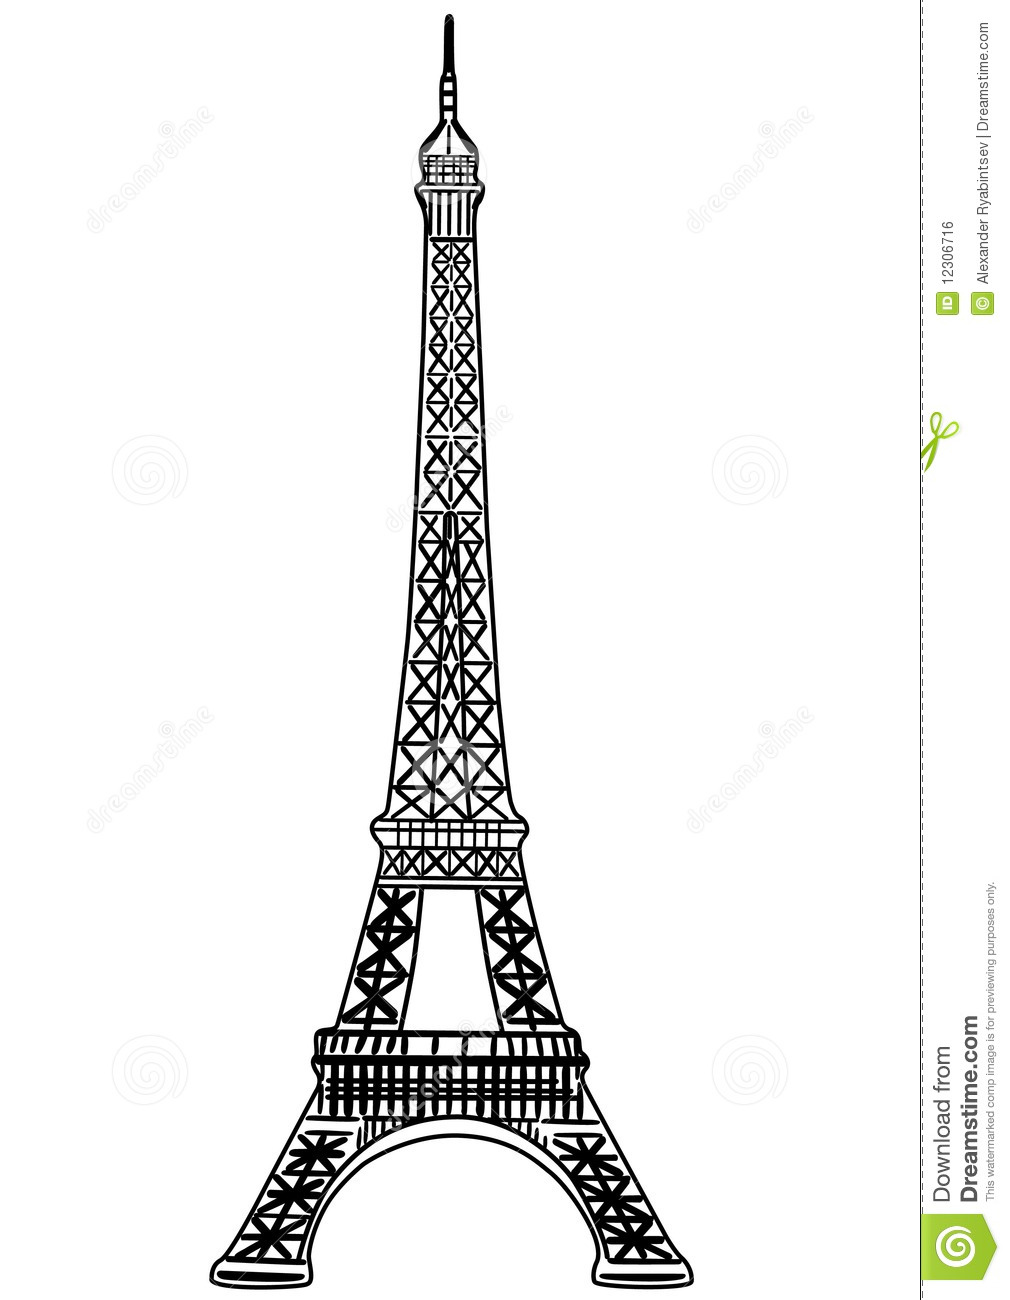 Super Eiffel Tower Vector Illustration Royalty Free Stock Image - Image  JB75